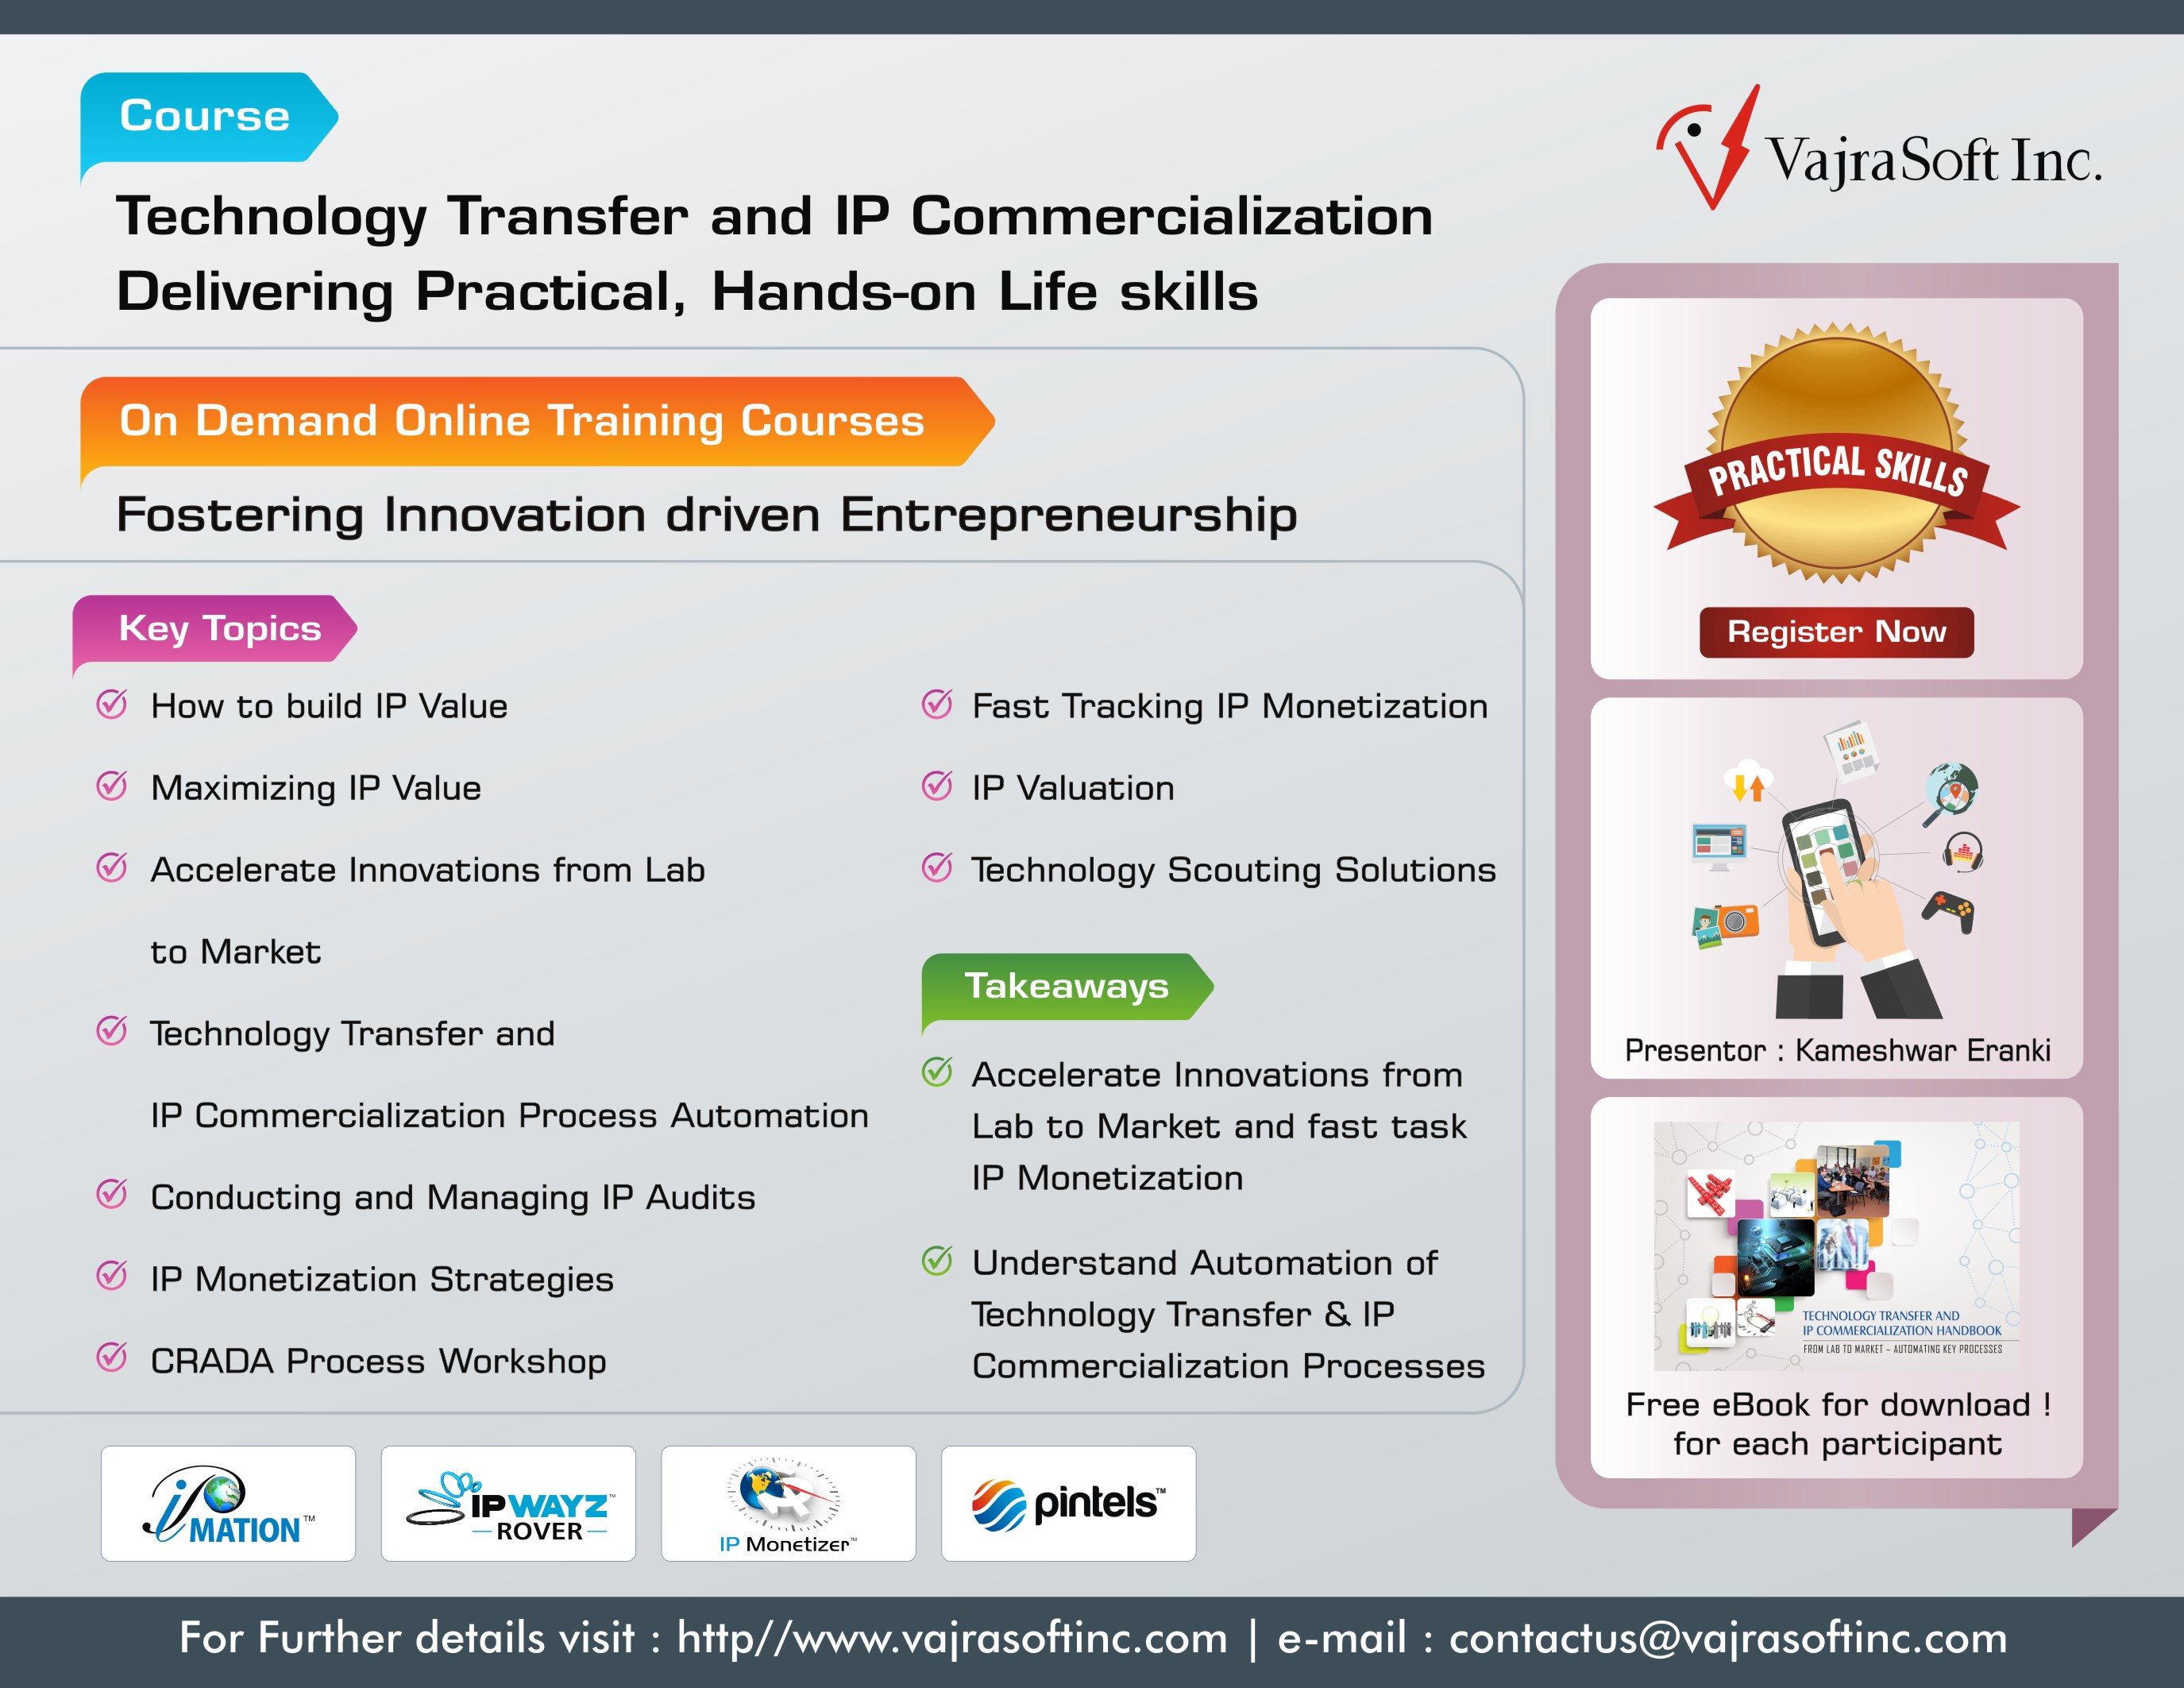 Technology Transfer & IP Commercialization